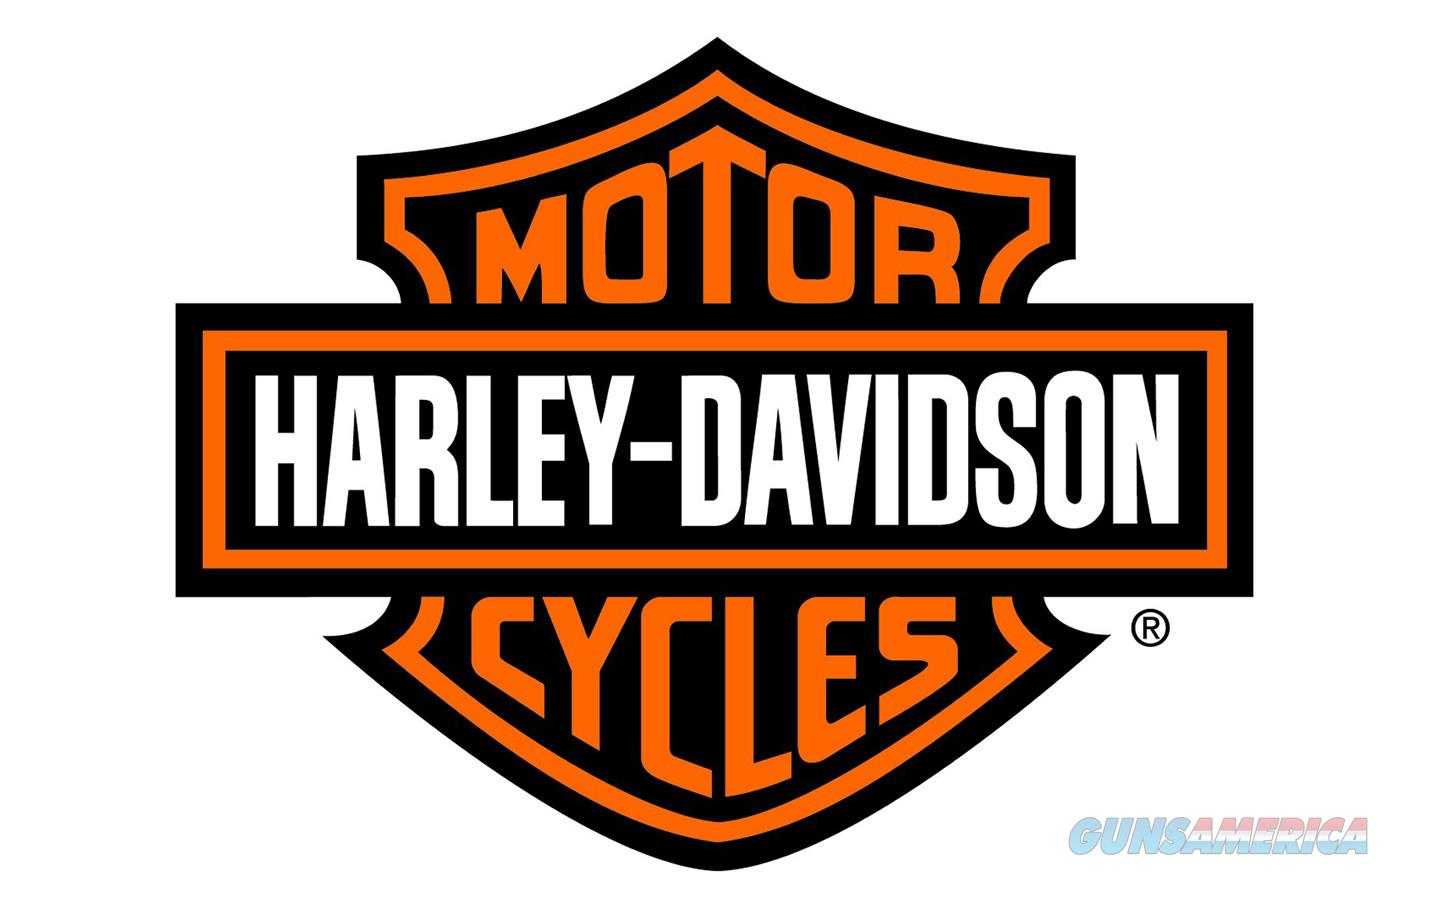 Harley davidson ceiling fan with remote chrom for sale 11207659g aloadofball Image collections